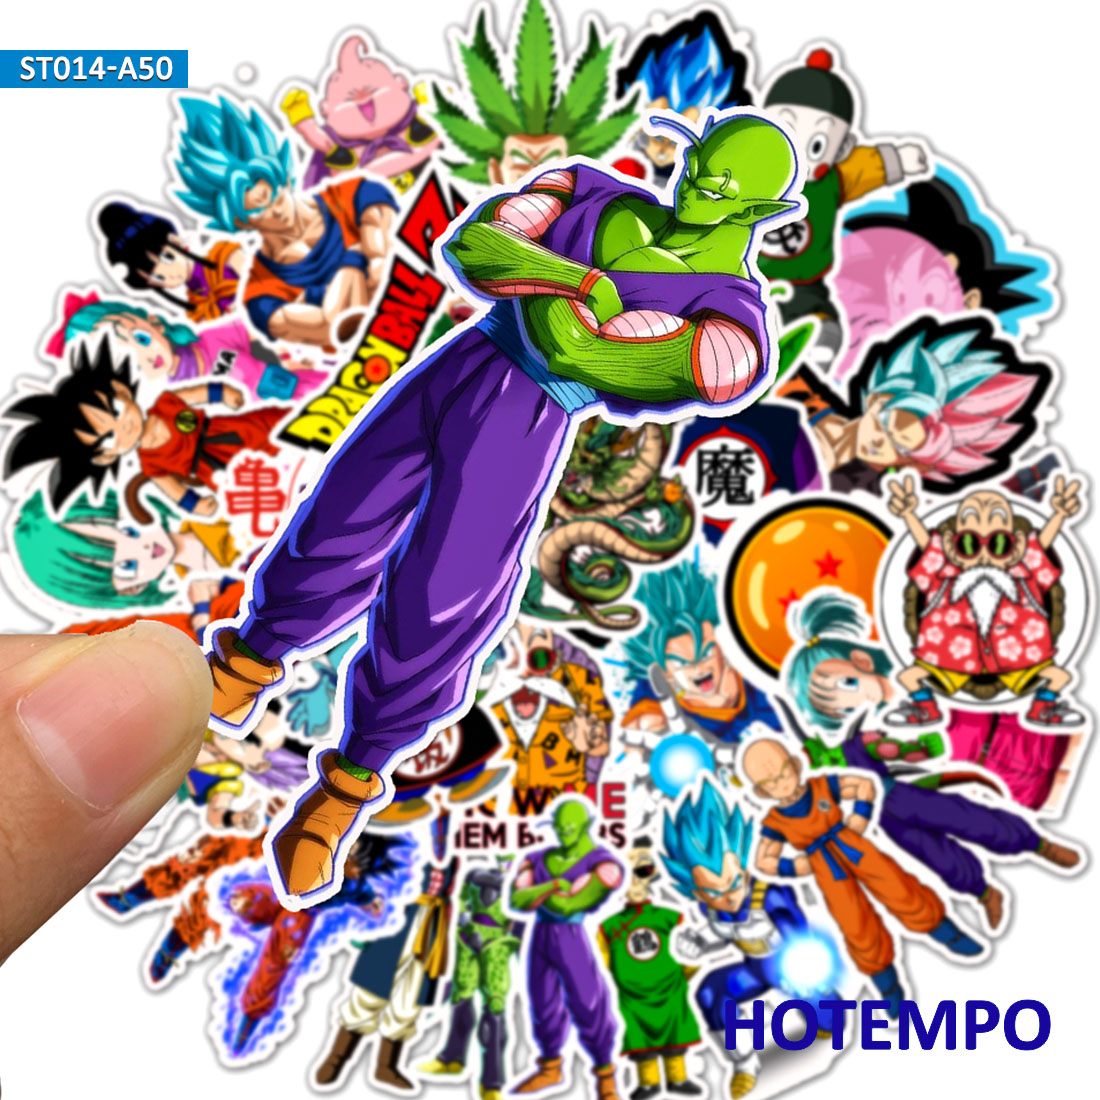 50pcs Not Repeat Anime Goku Dragon Ball Stickers DIY Mobile Phone Laptop Luggage Suitcase Guitar Skateboard Decal Stickers